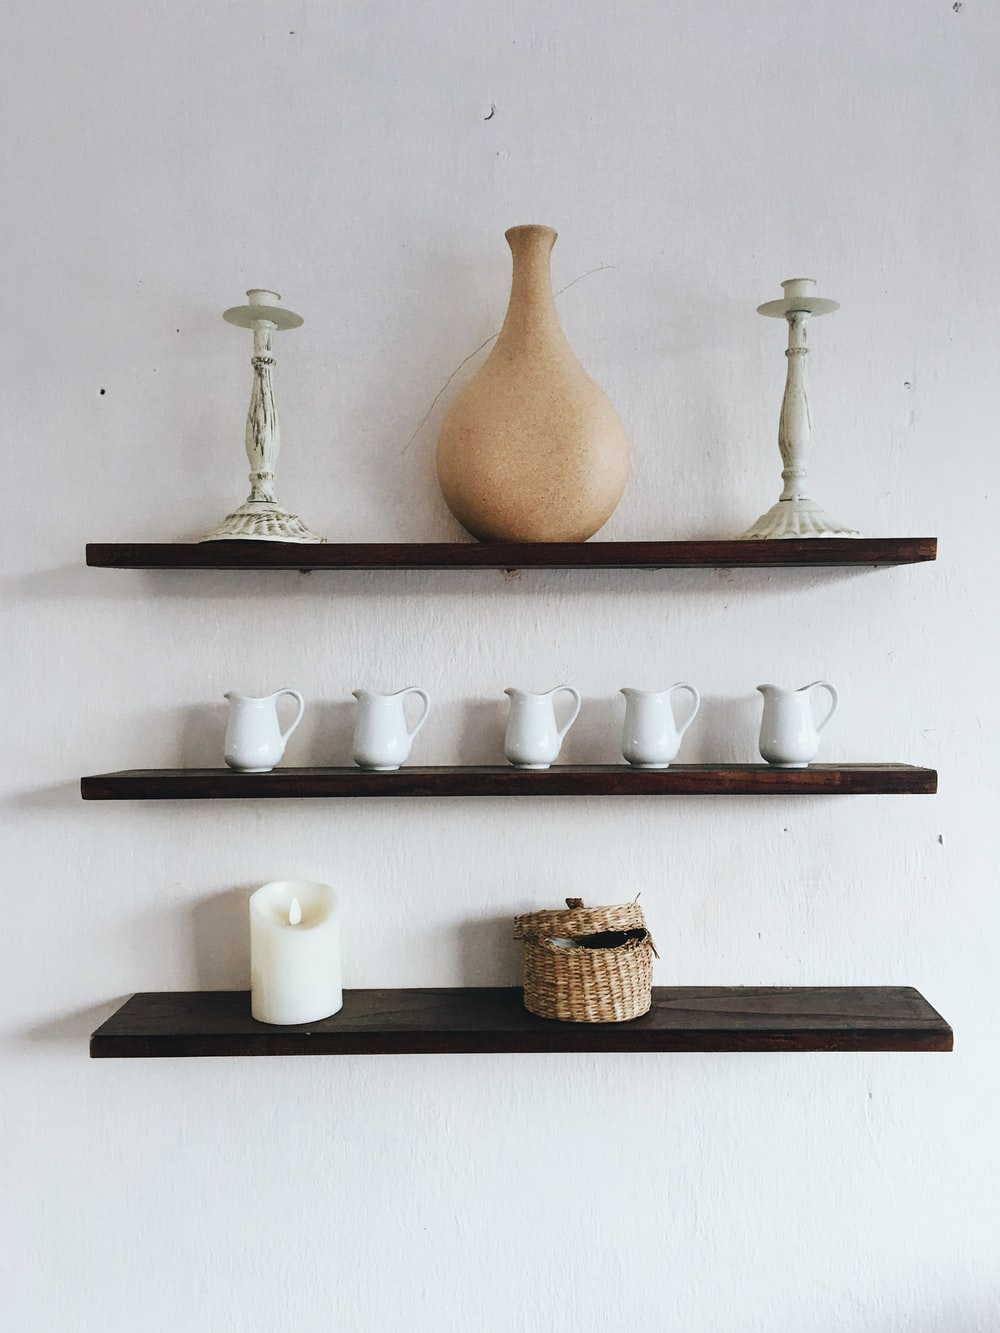 white and brown ceramic vase on white wooden shelf